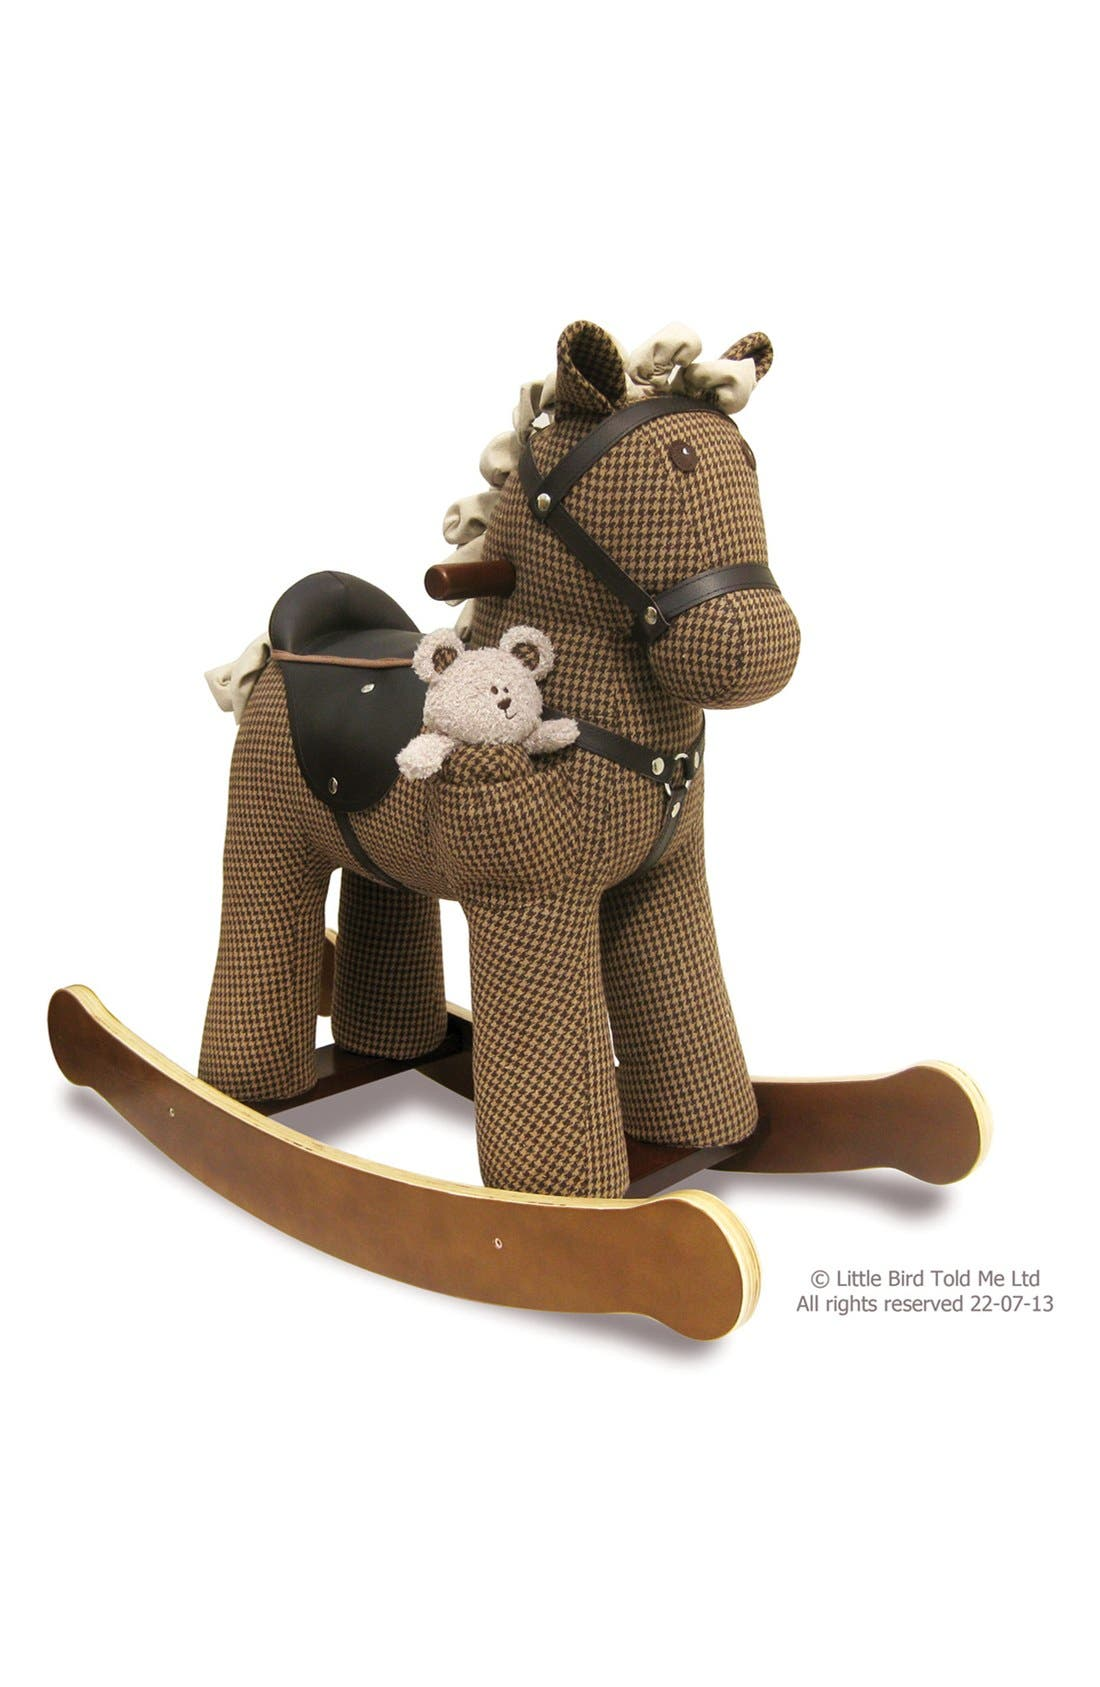 LITTLE BIRD TOLD ME Rocking Horse & Stuffed